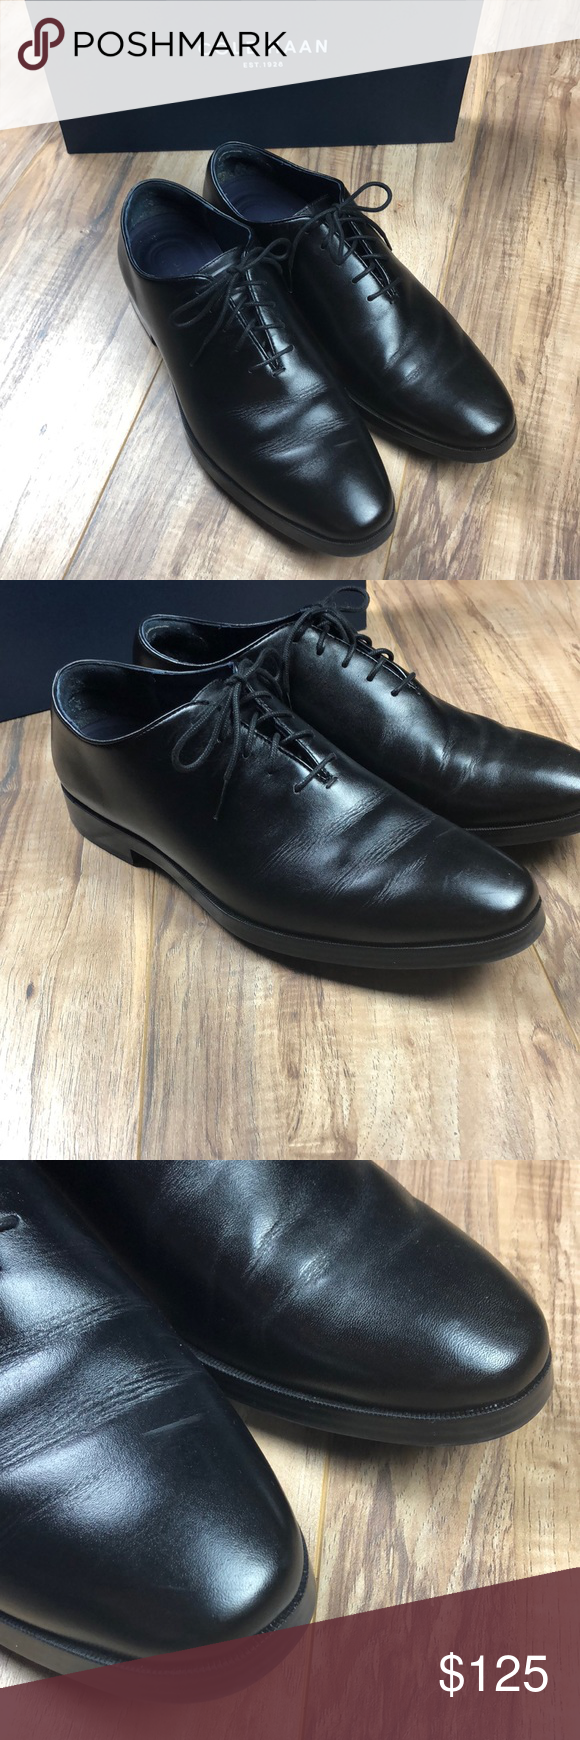 sells new list new items Cole Haan Sz 10 Jefferson grand wholecut oxfords Size 10 ...